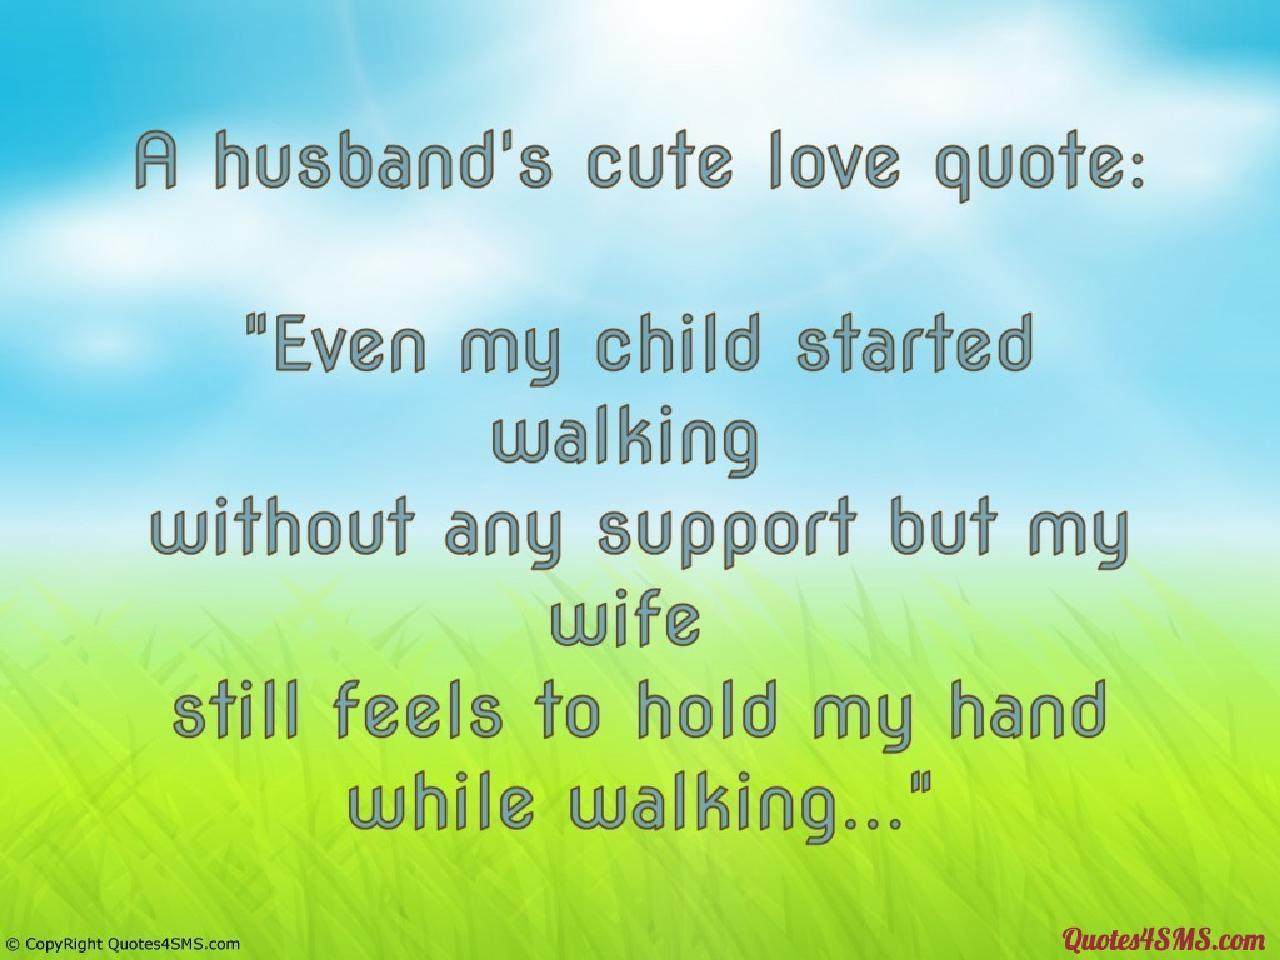 I Love You Wallpaper For Husband : I Love My Husband Wallpapers - Wallpaper cave